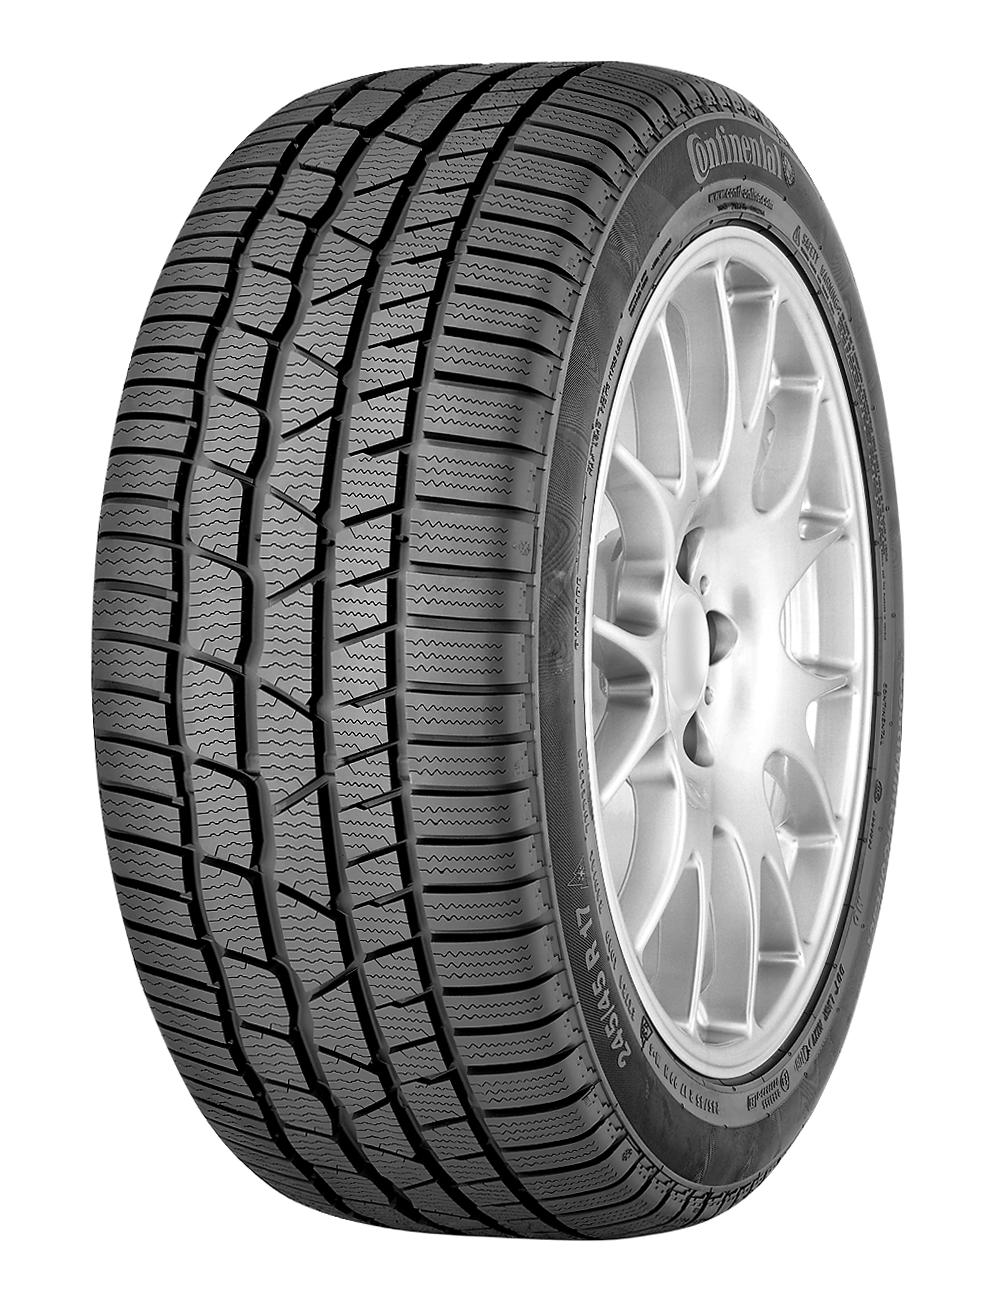 Gomme Nuove Continental 225/55 R17 101V TS830 P XL M+S (100%) pneumatici nuovi Invernale